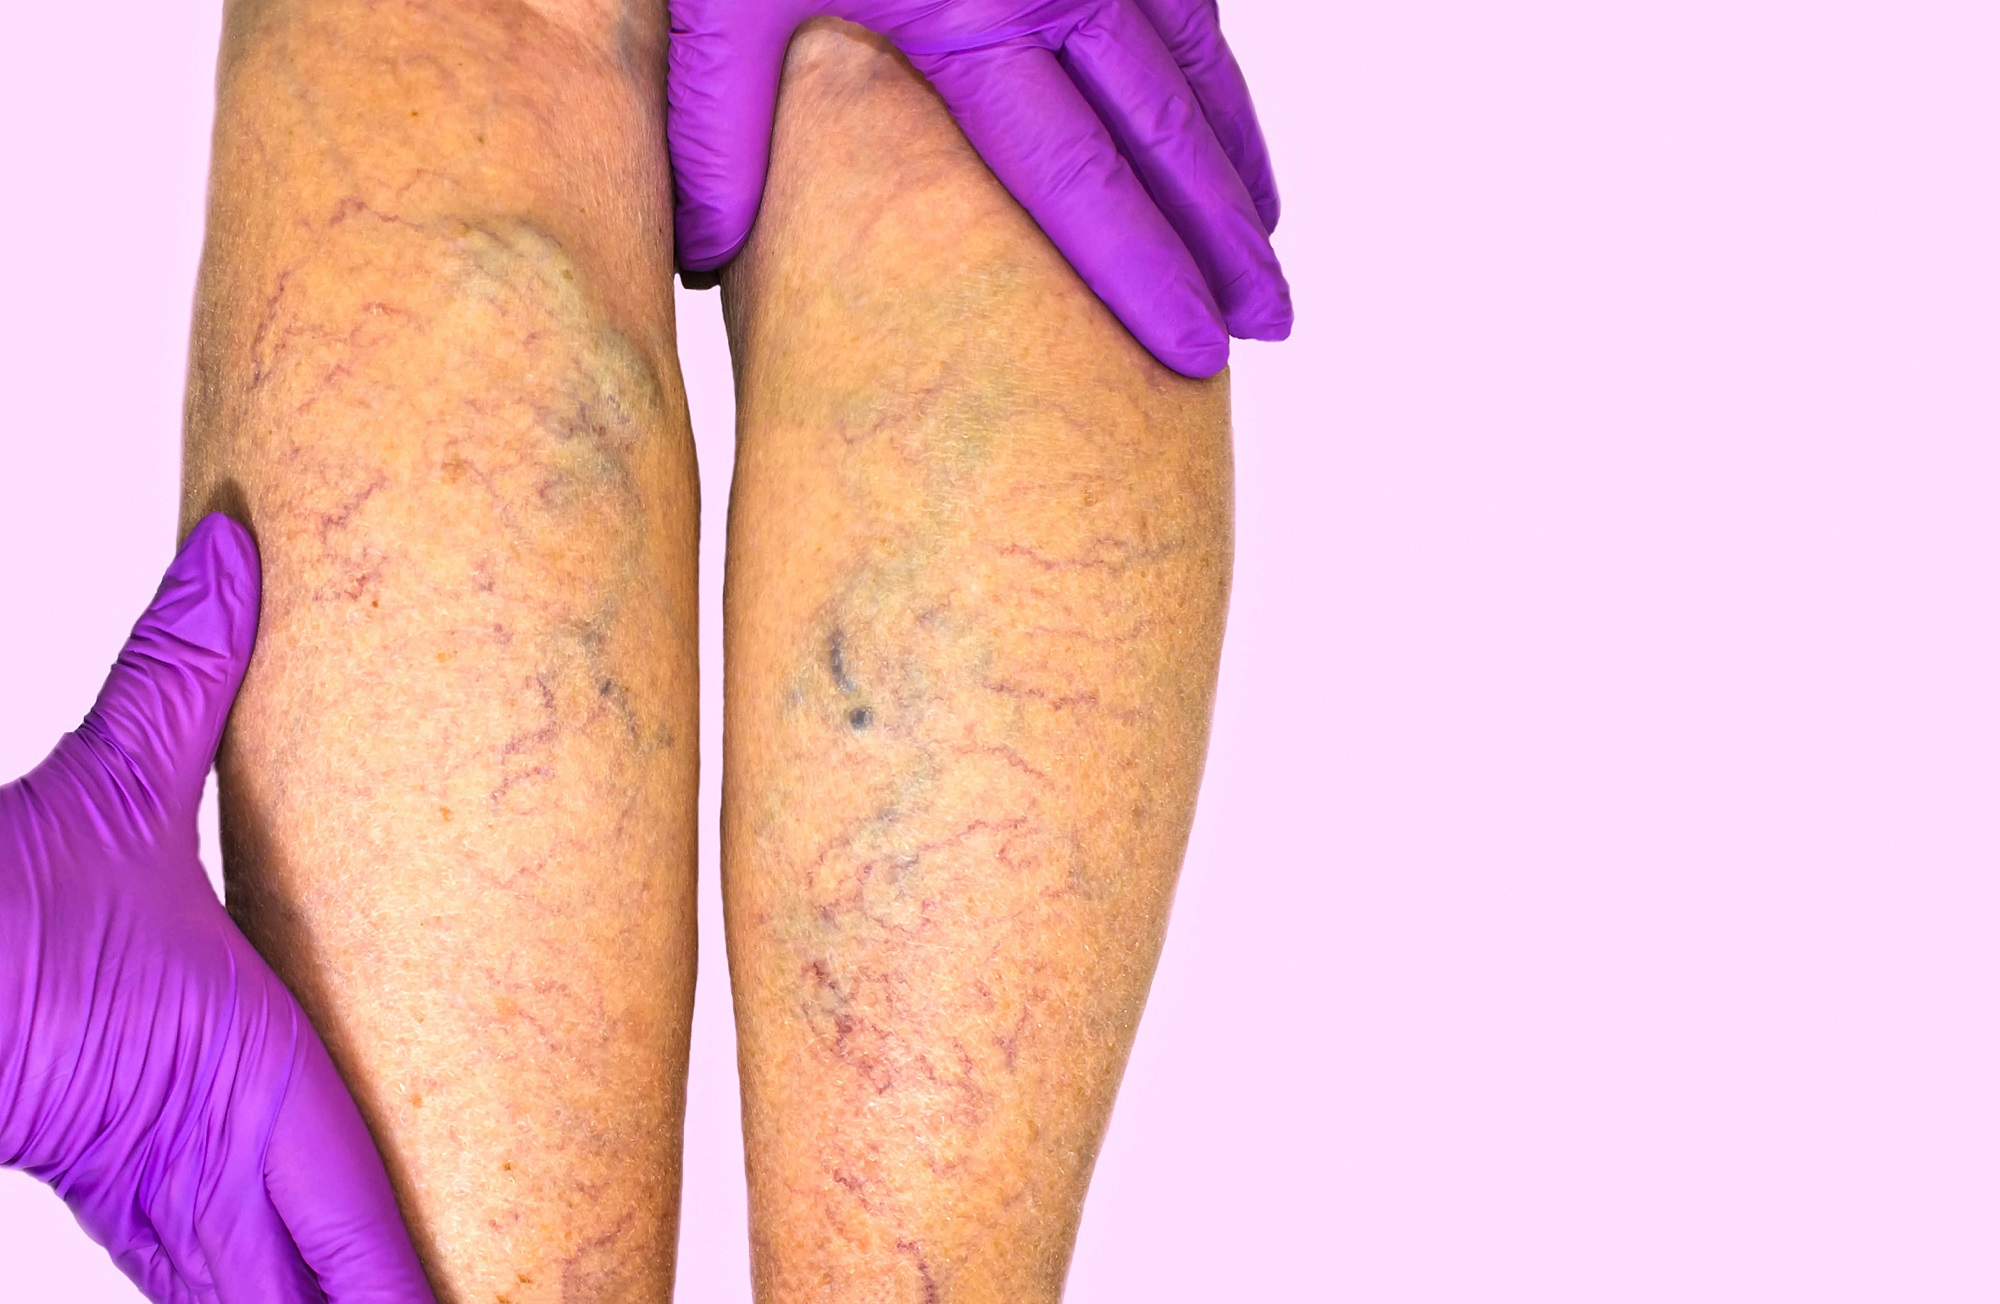 Peripheral Arterial Disease: Why it is Critical to See a Vein Specialist